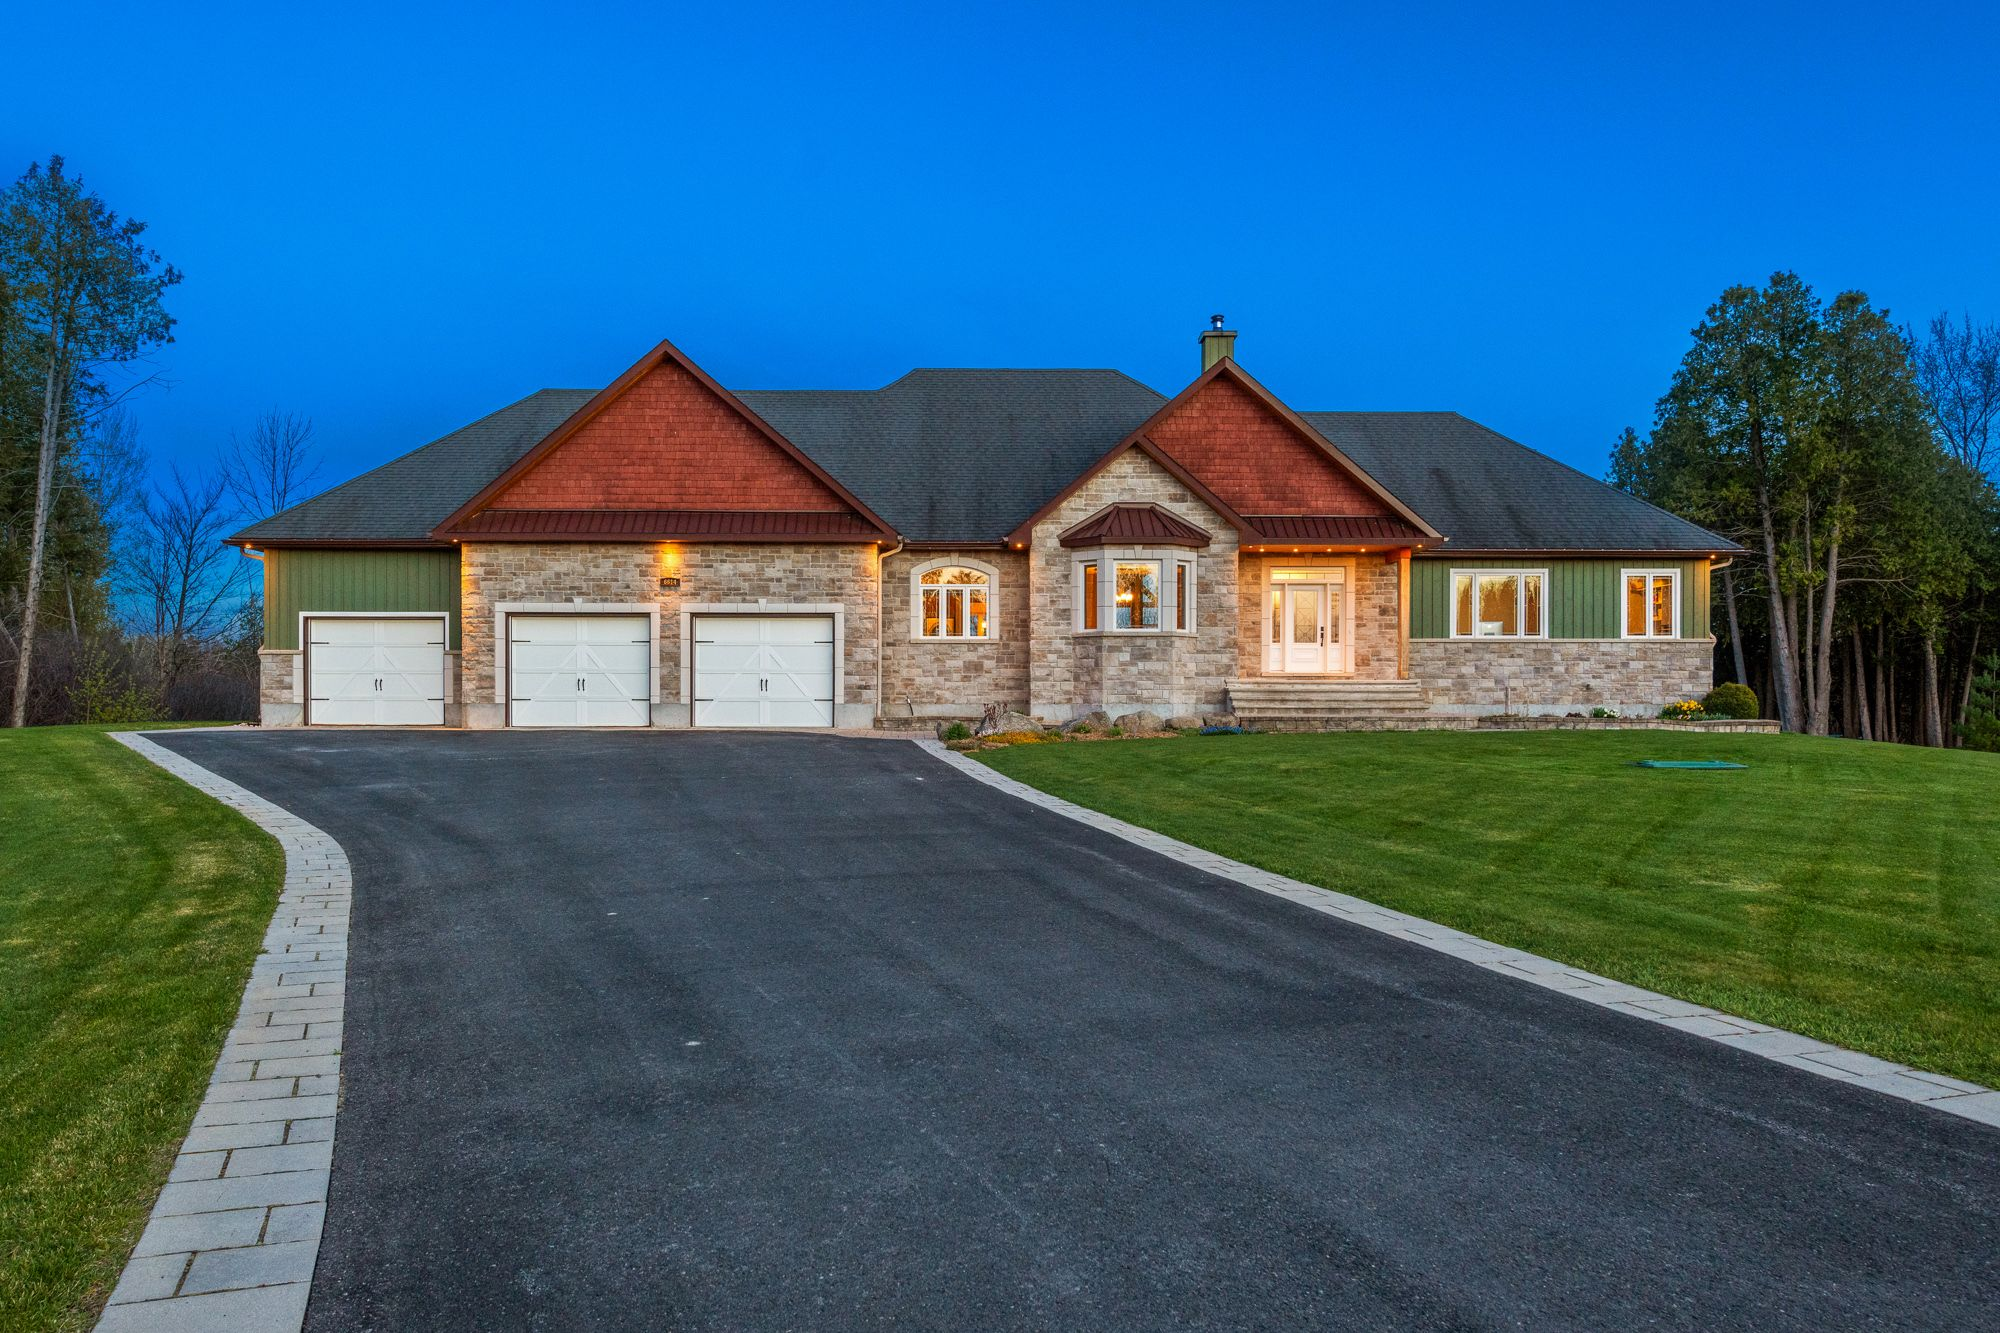 Main Photo: 6614 BLOSSOM TRAIL Drive in Greely: House for sale : MLS®# 1238476